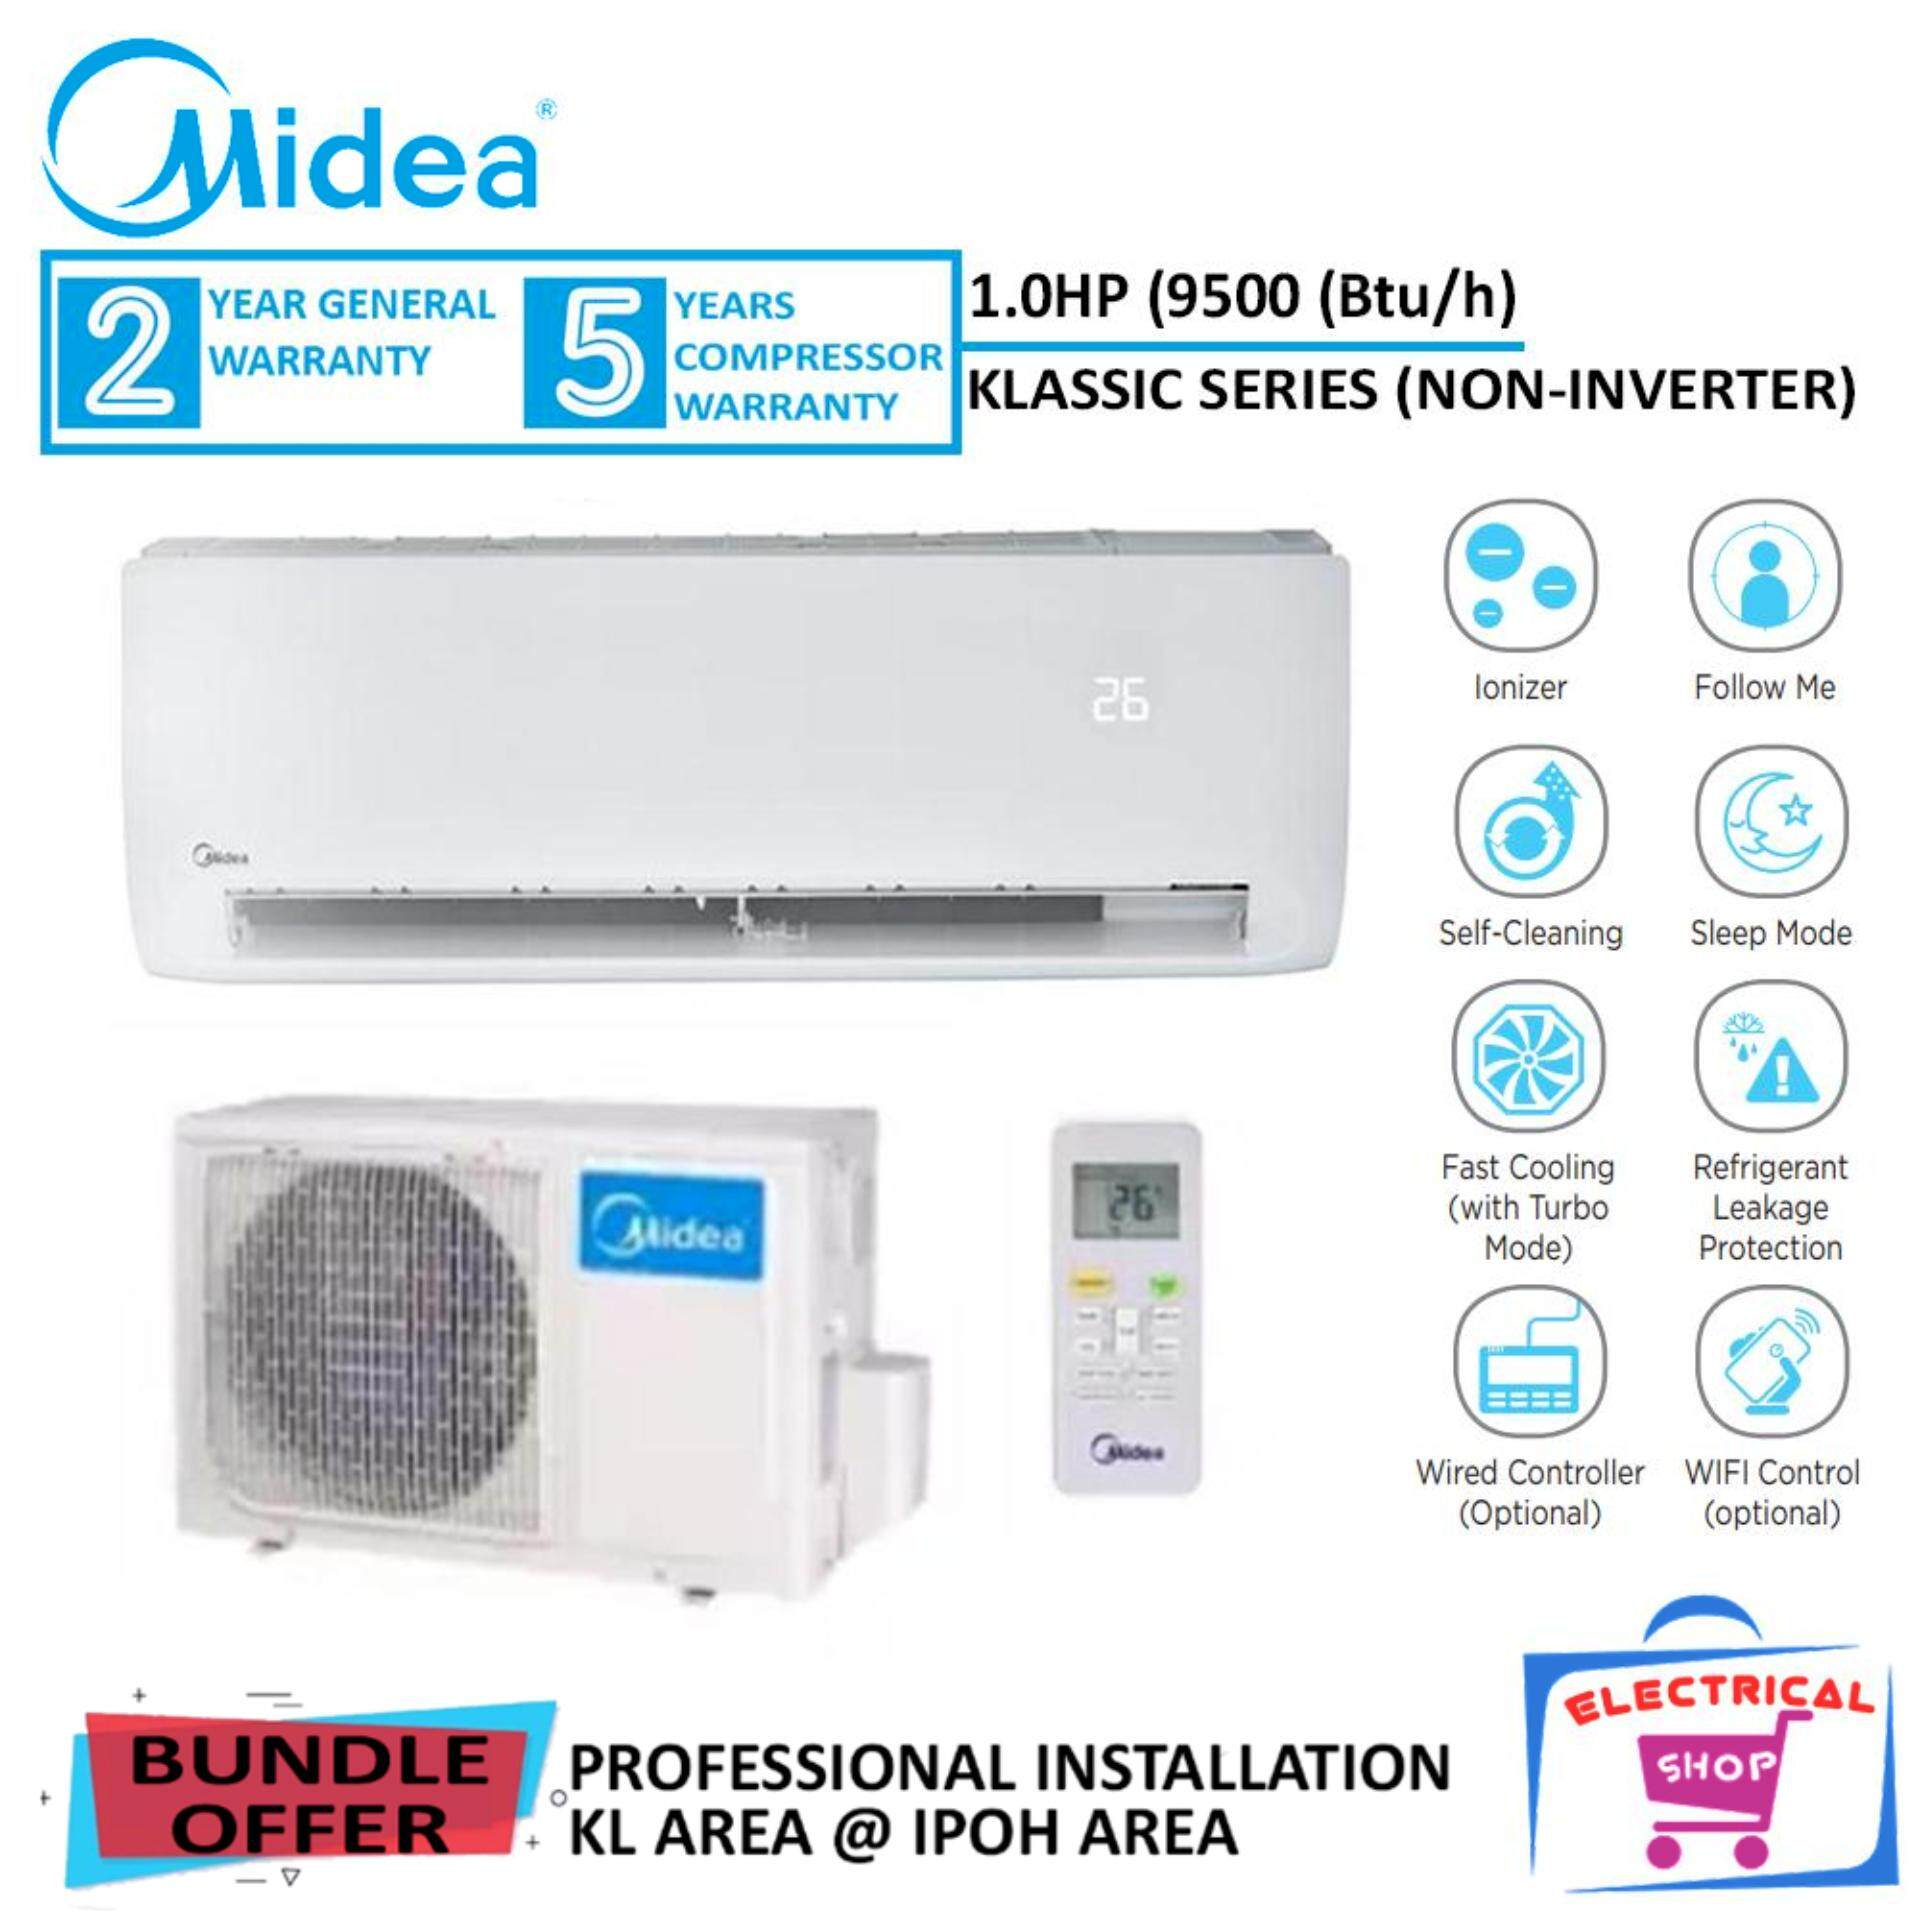 Midea Air Cond MSK409CRN1 1.0HP MSK409 Air Conditioner MSK4-09CRN1